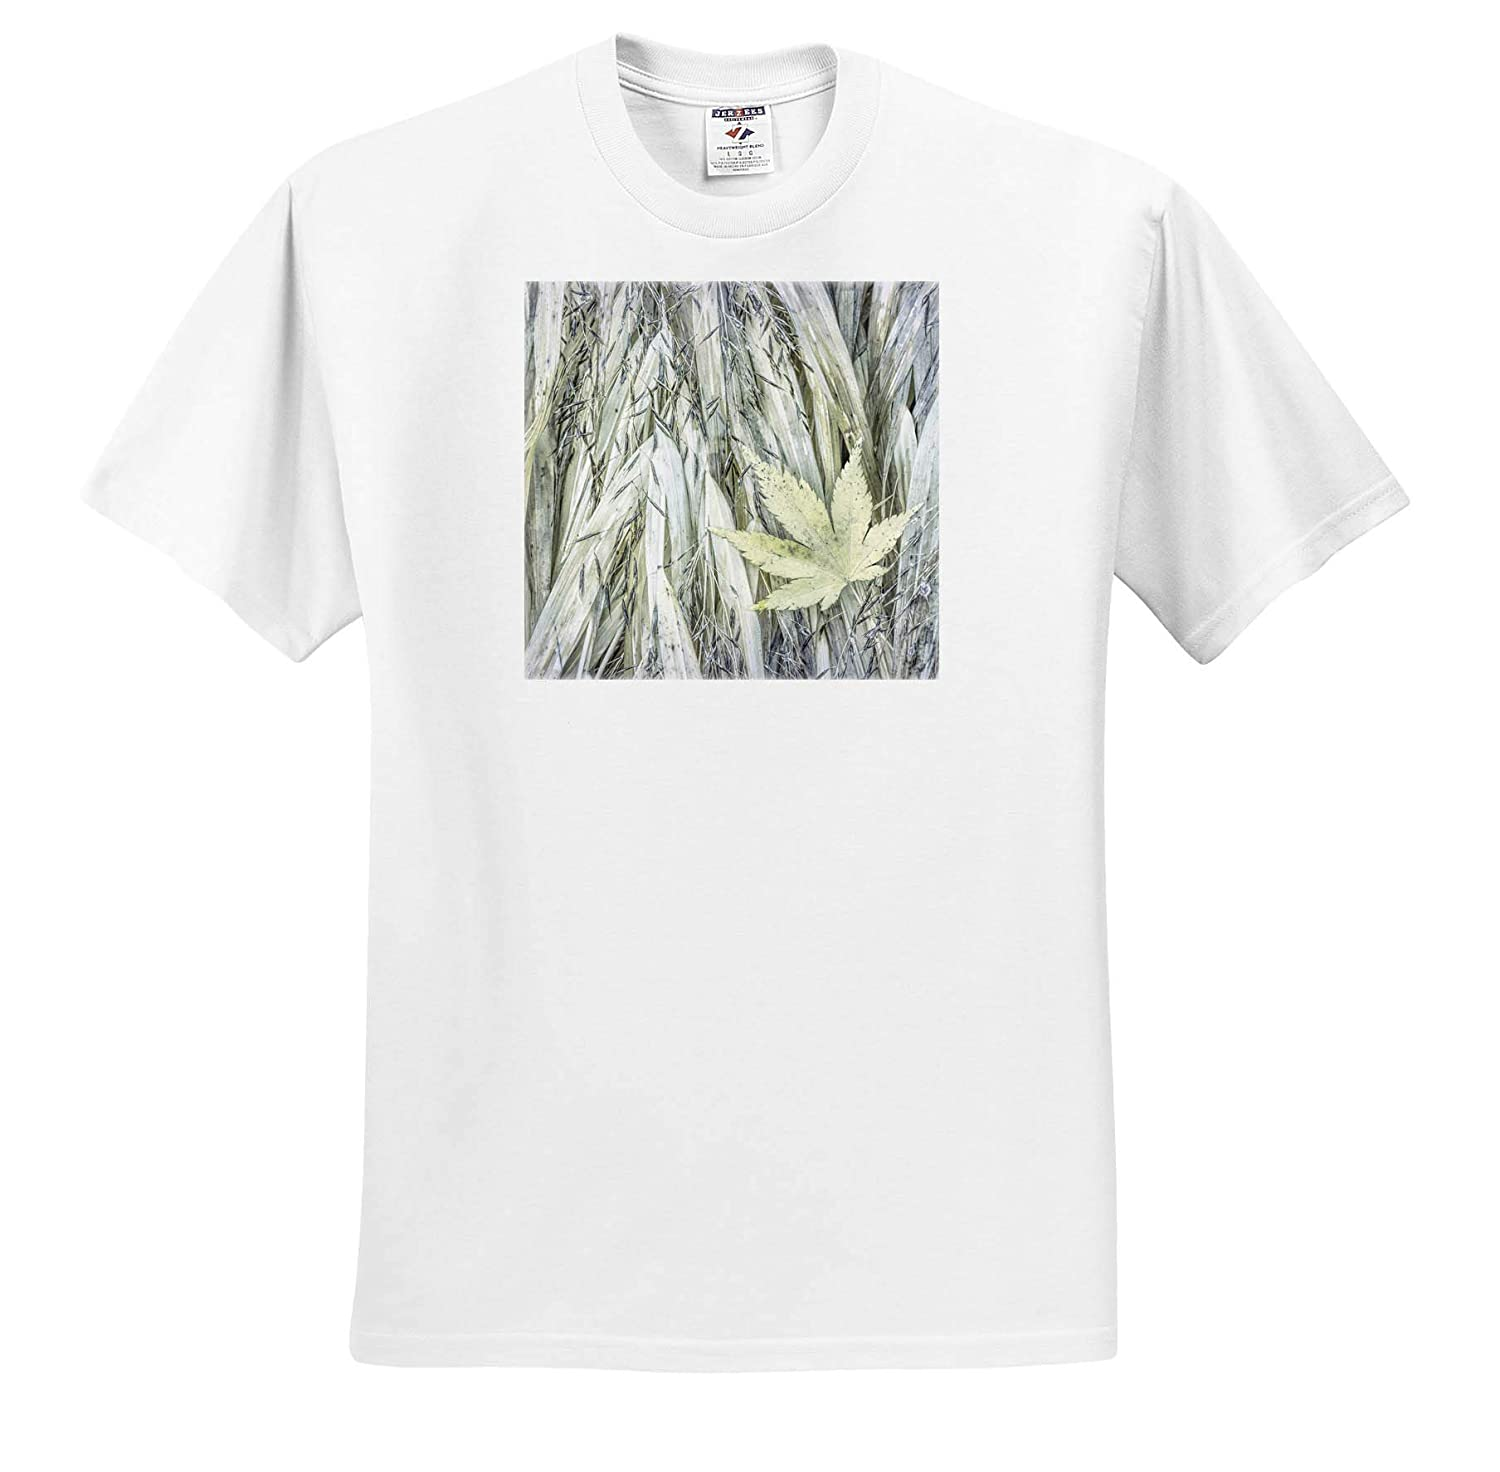 Natural Patterns ts/_315097 Maple Leaf on Japanese Forest Grass in Autumn - Adult T-Shirt XL 3dRose Danita Delimont